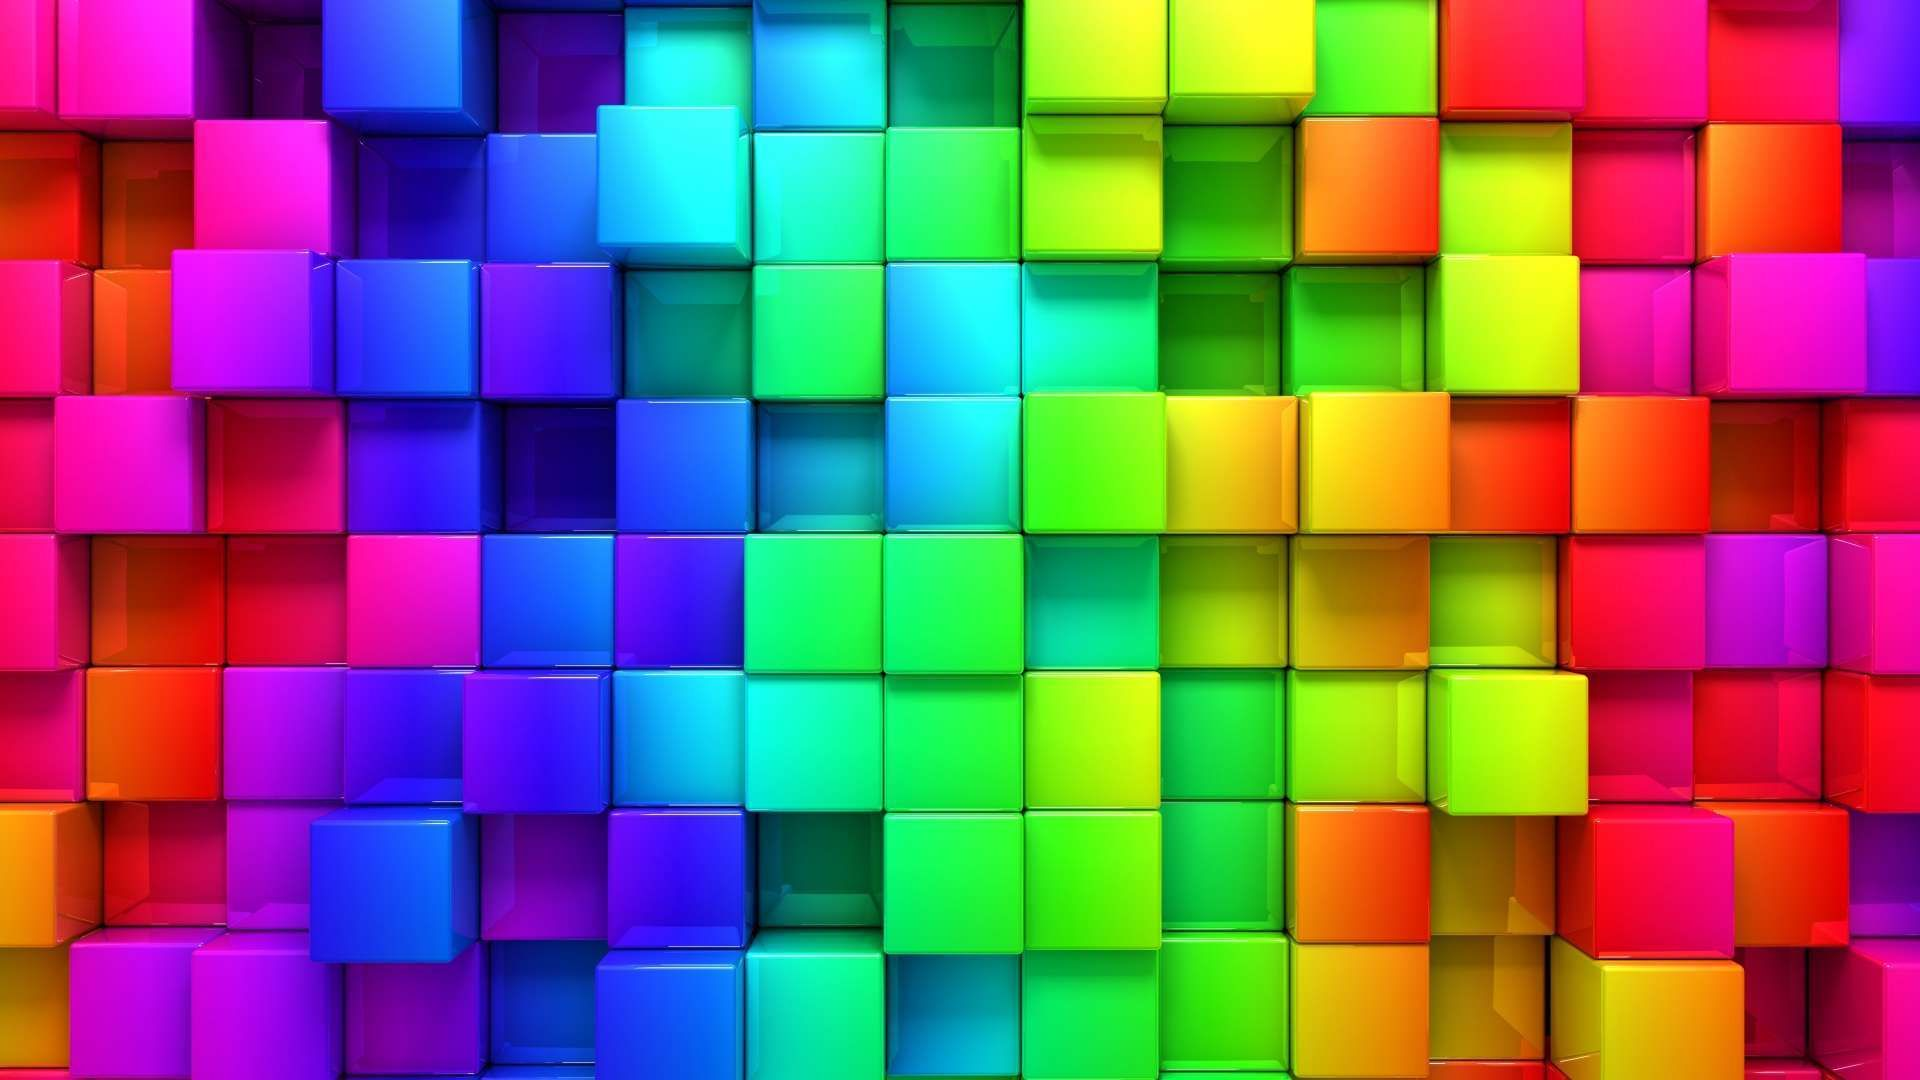 Blocks Rainbow Graphics Background Hd Wallpaper Hdwallwide